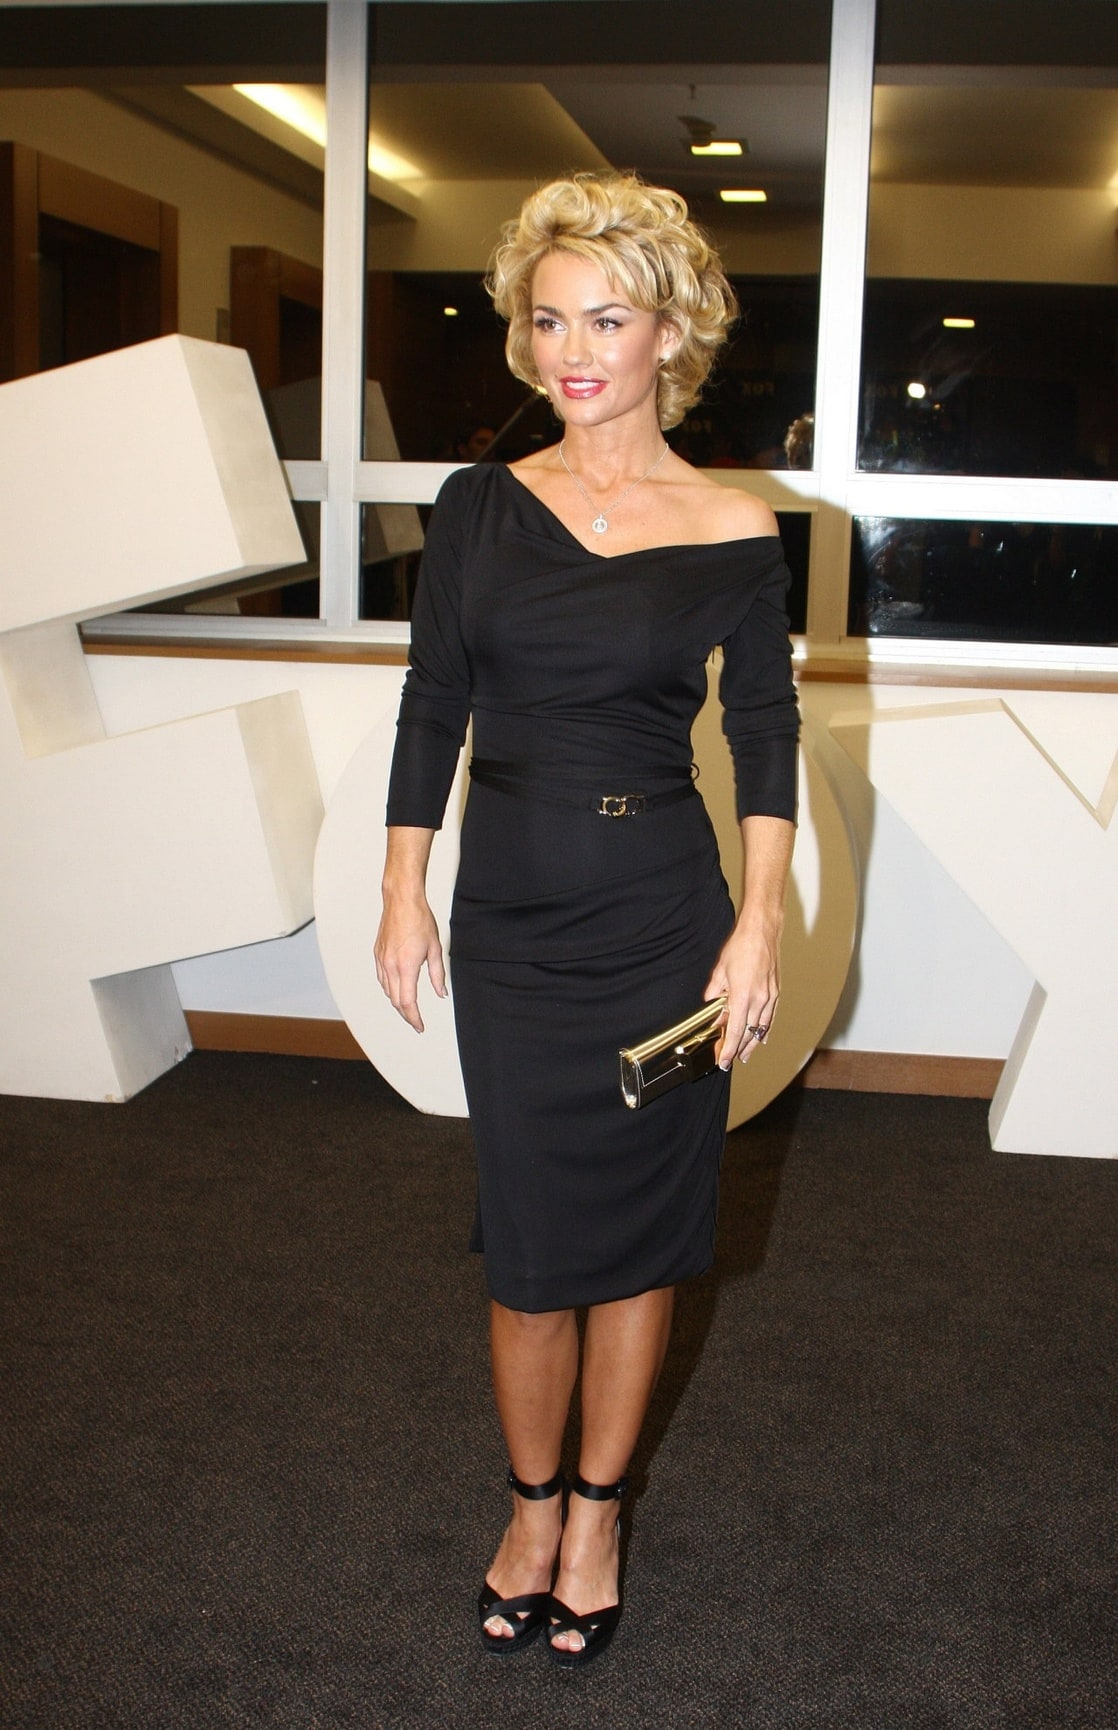 Kelly carlson legs remarkable, very